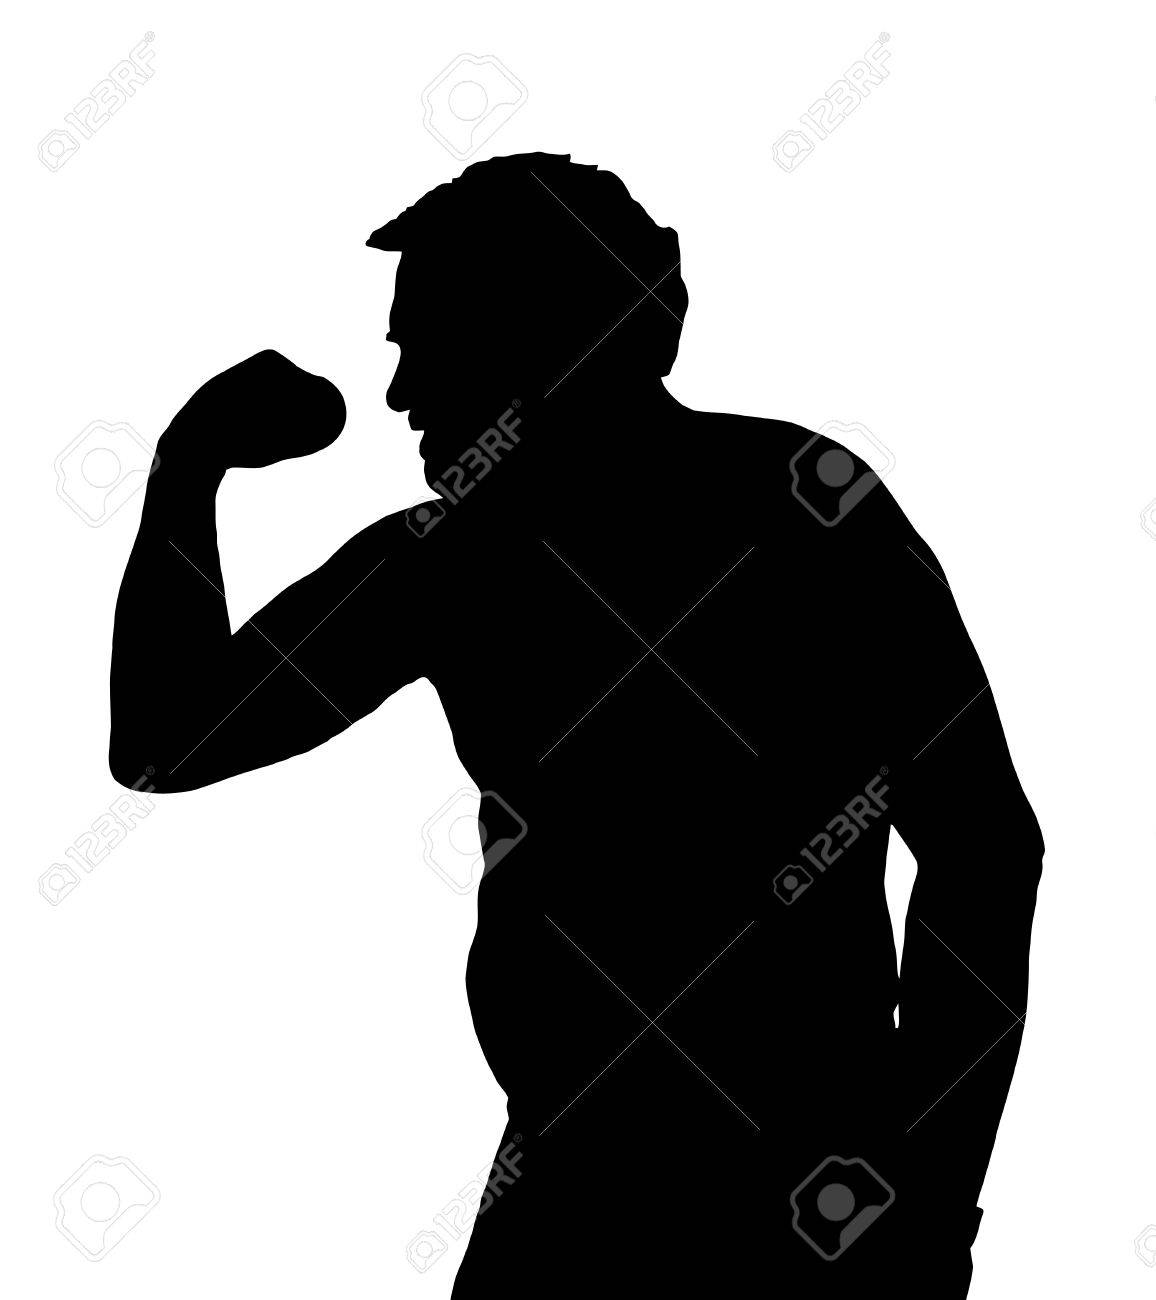 Man Silhouette with Potbelly Exercising with a Dumbbell Stock Vector - 27583780